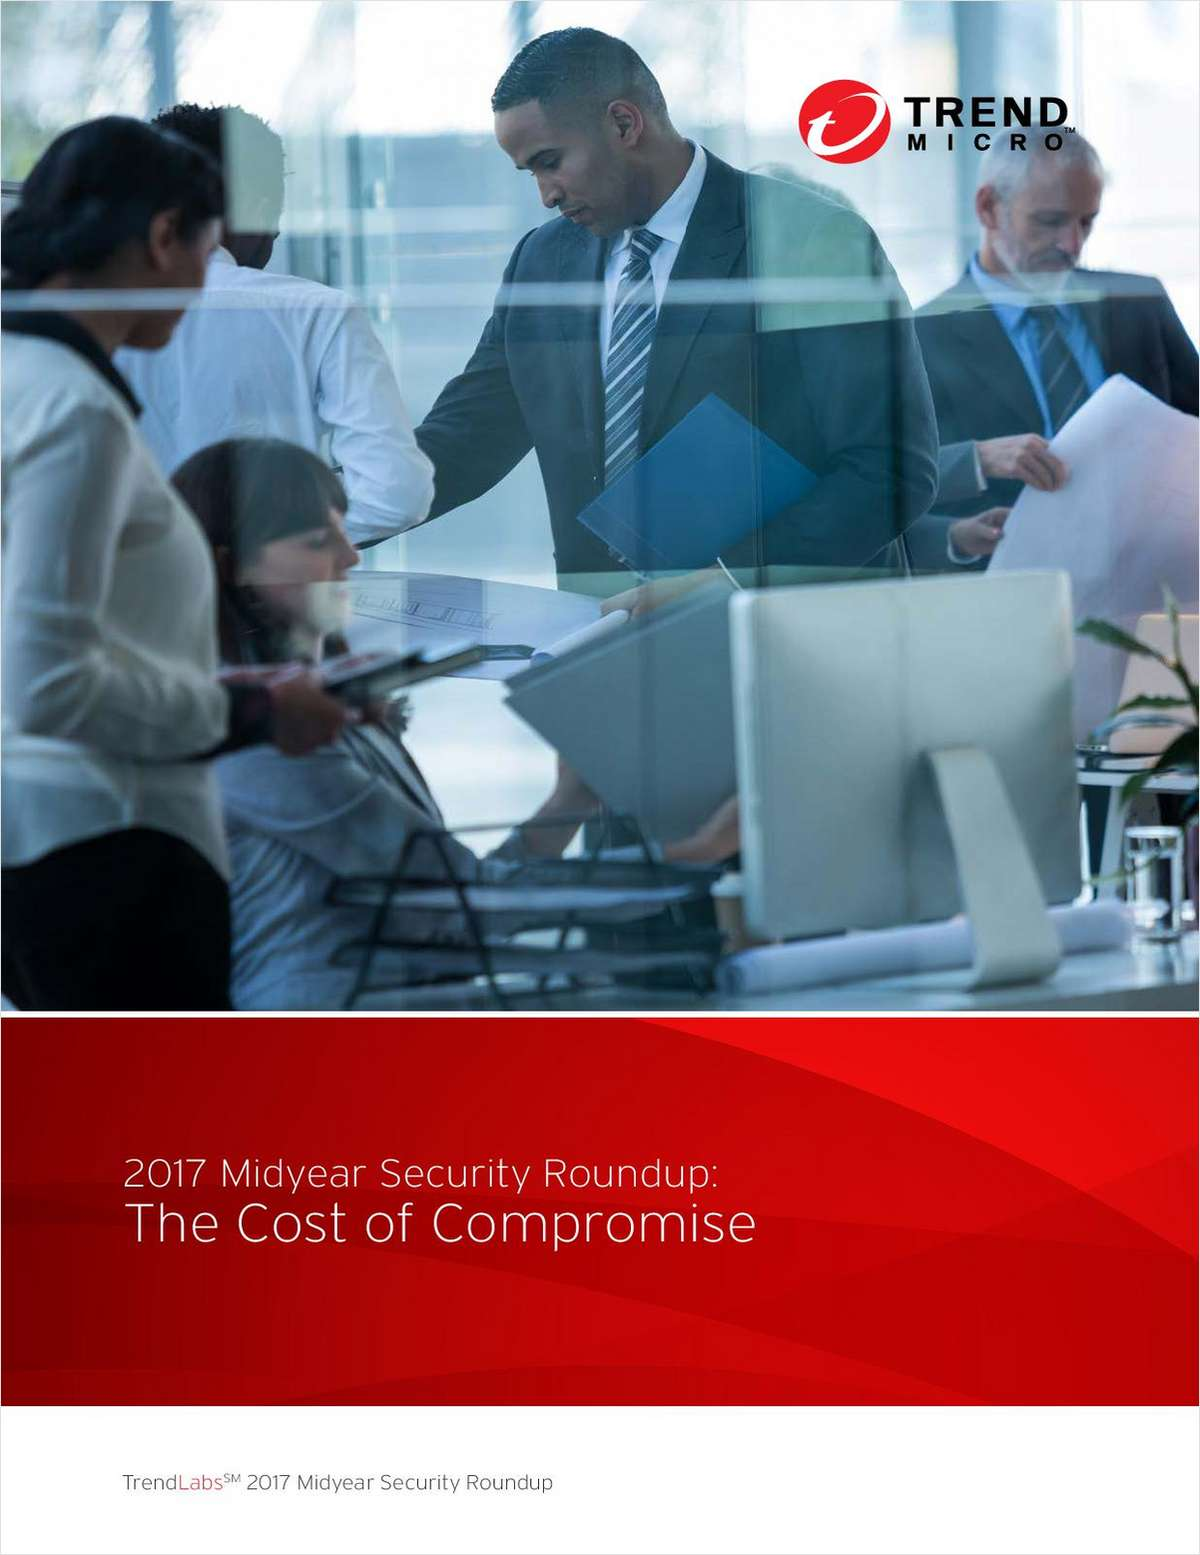 2017 Midyear Security Roundup: The Cost of Compromise